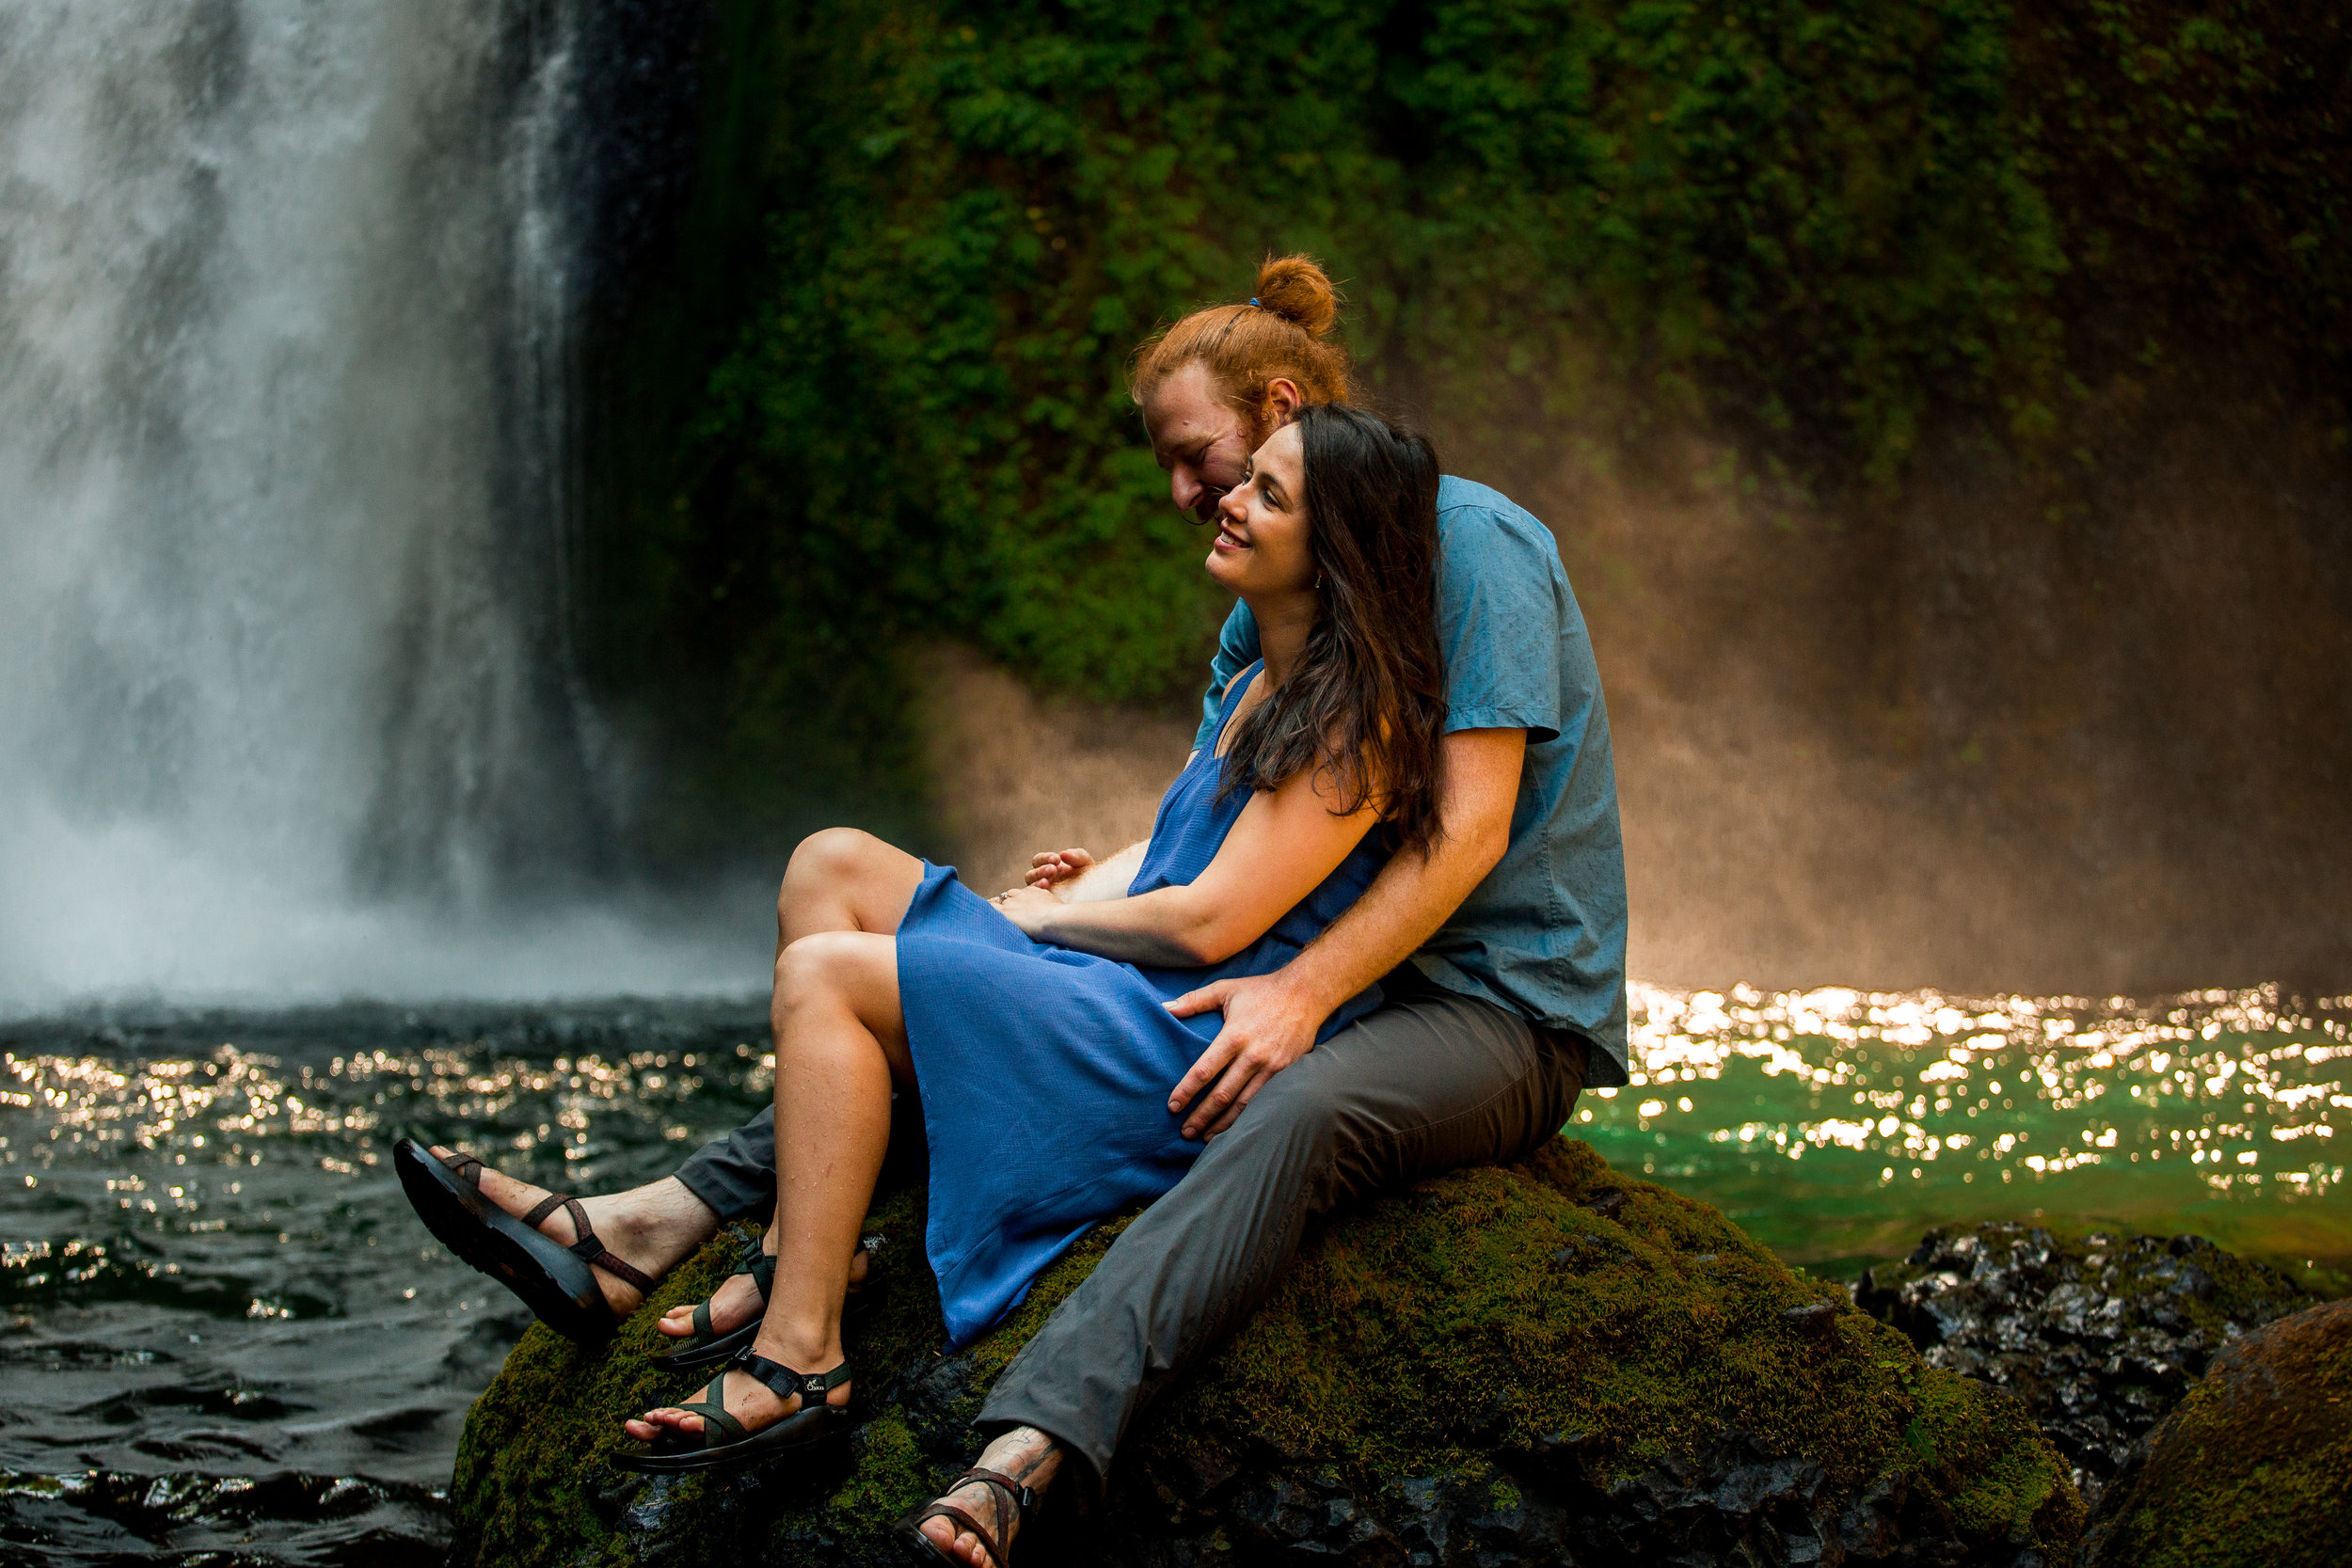 nicole-daacke-photography-wahclella-falls-waterfall-engagement-session-portland-engagement-photographer-columbia-river-gorge-oregon-elopement-photographer-22.jpg